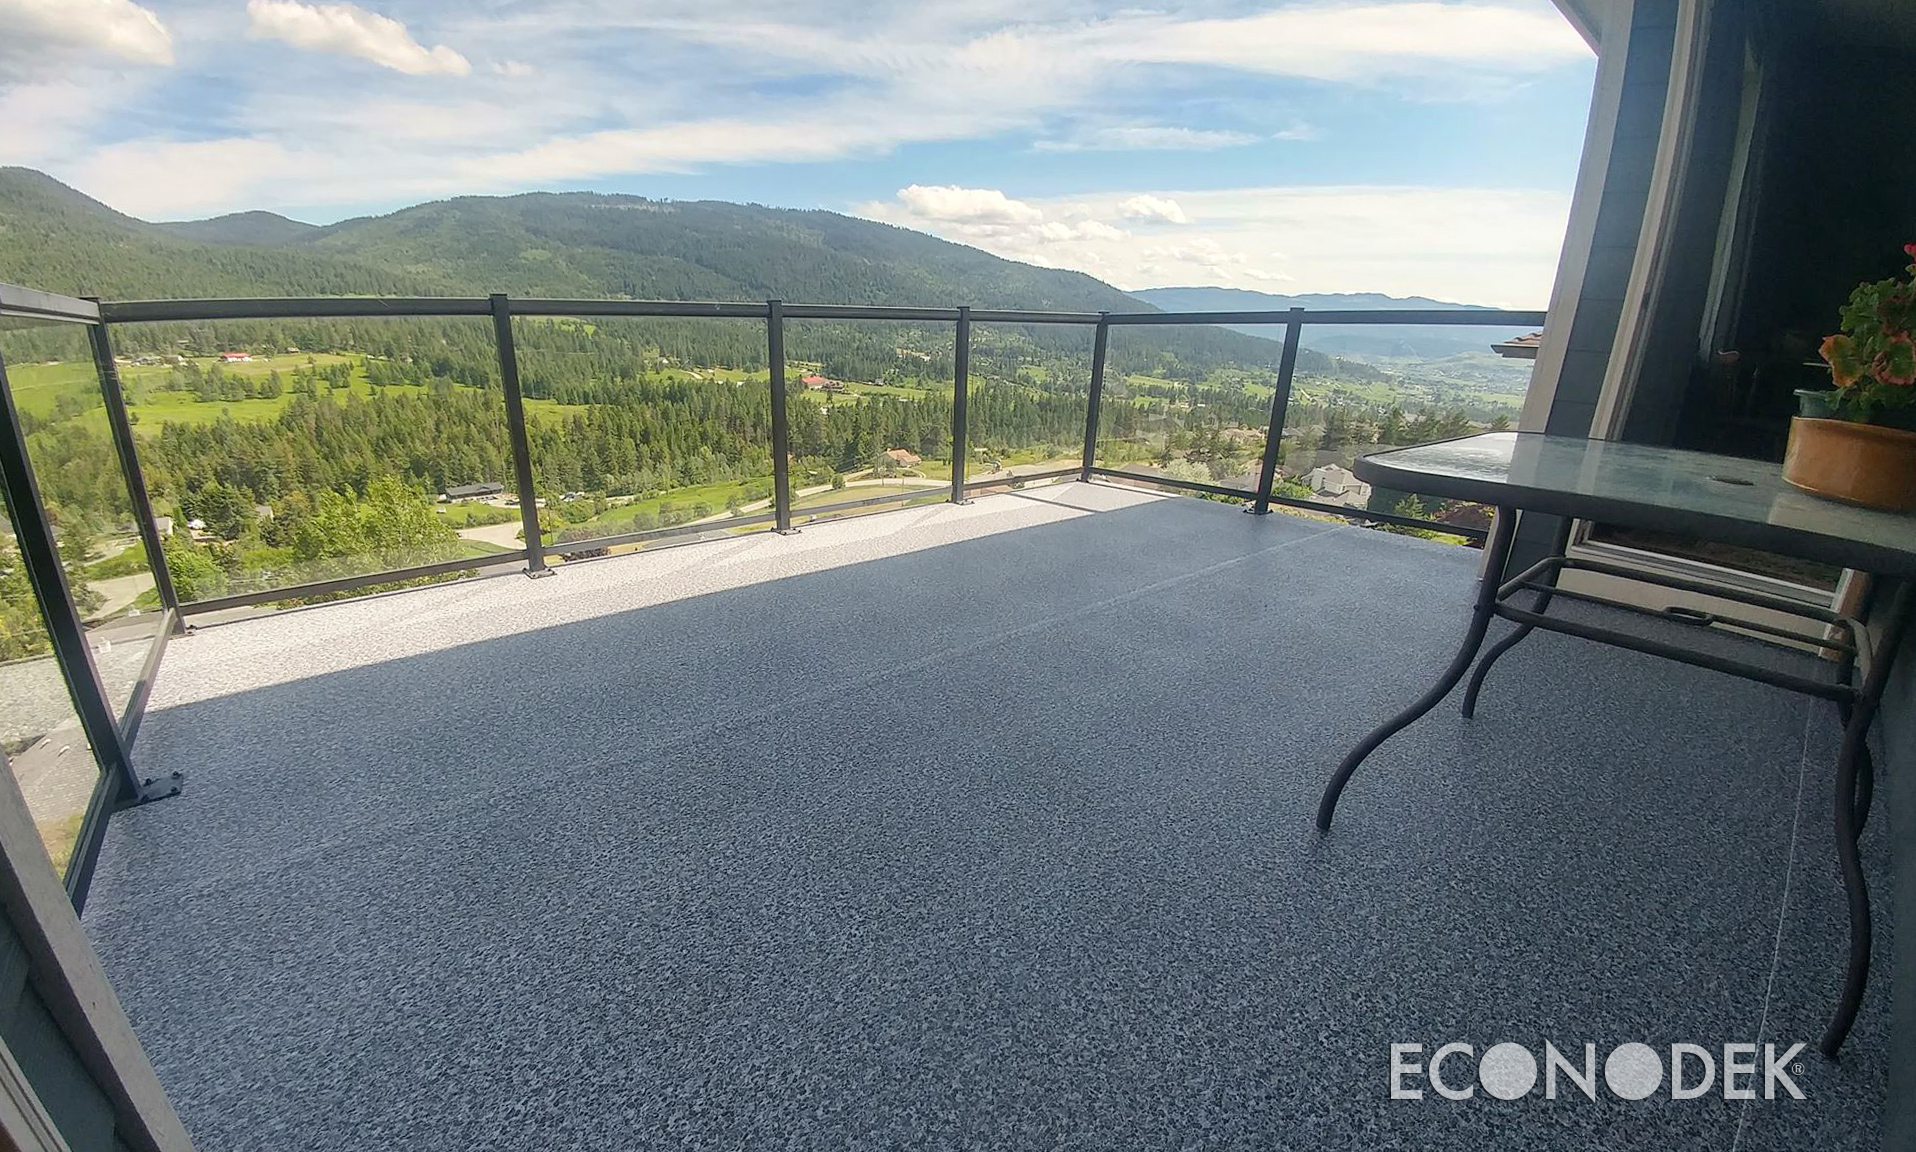 Outdoor Deck Covering | Econodek™